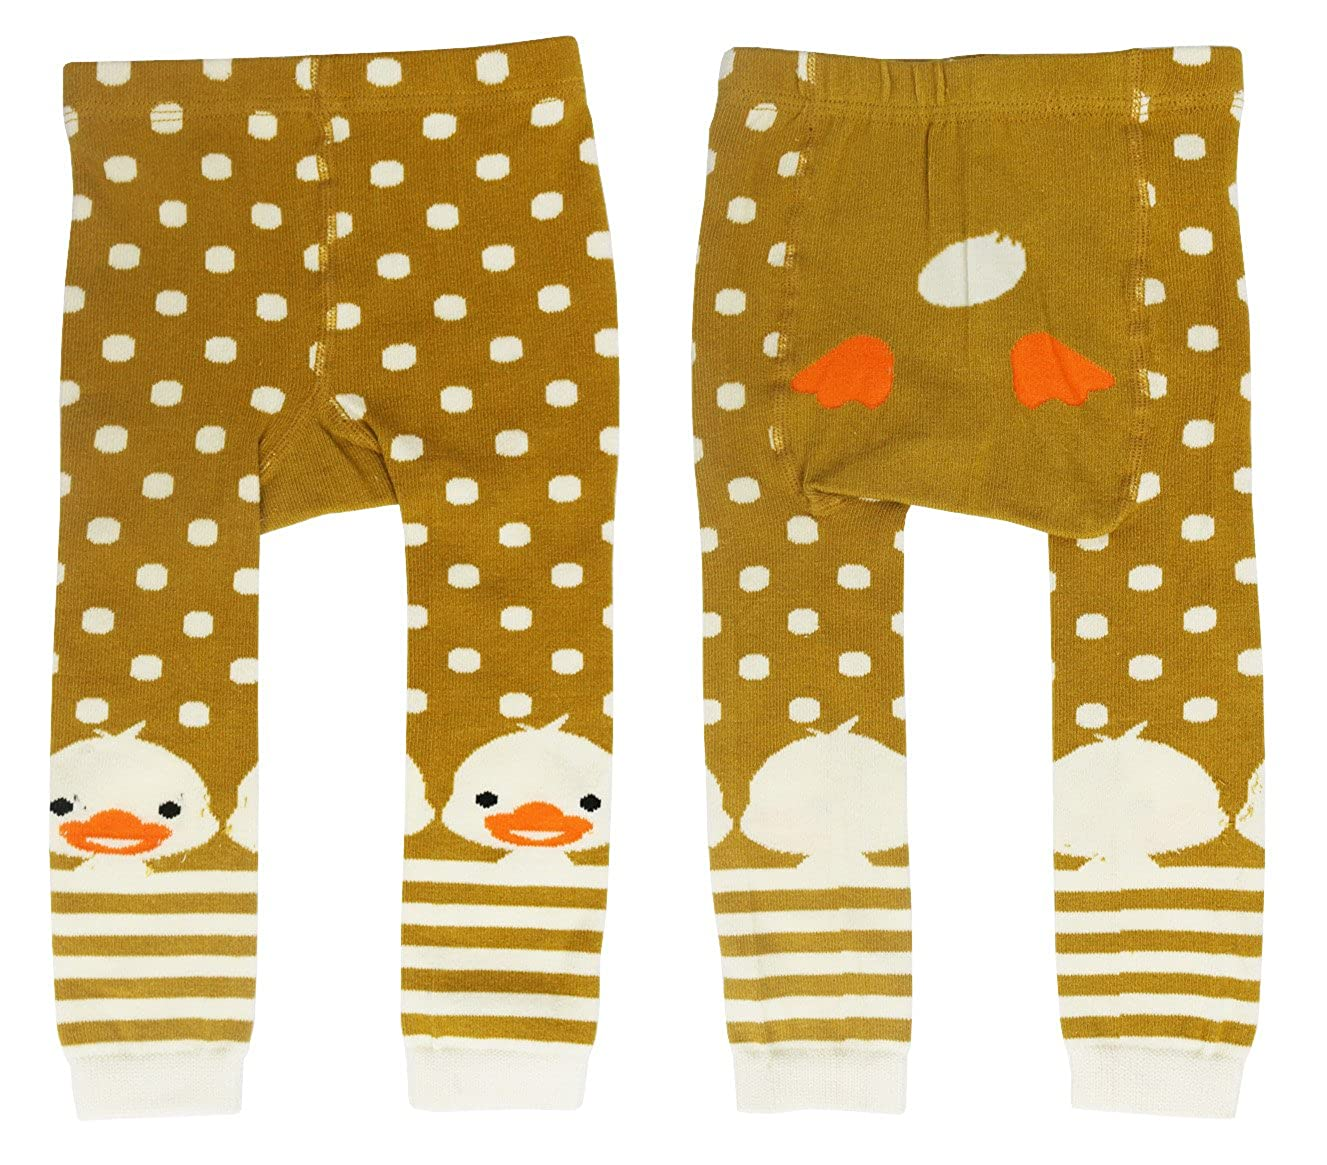 CHUNG Baby Toddler Boys Girls Cotton Footless Ankle Length Tights 6M-3Y